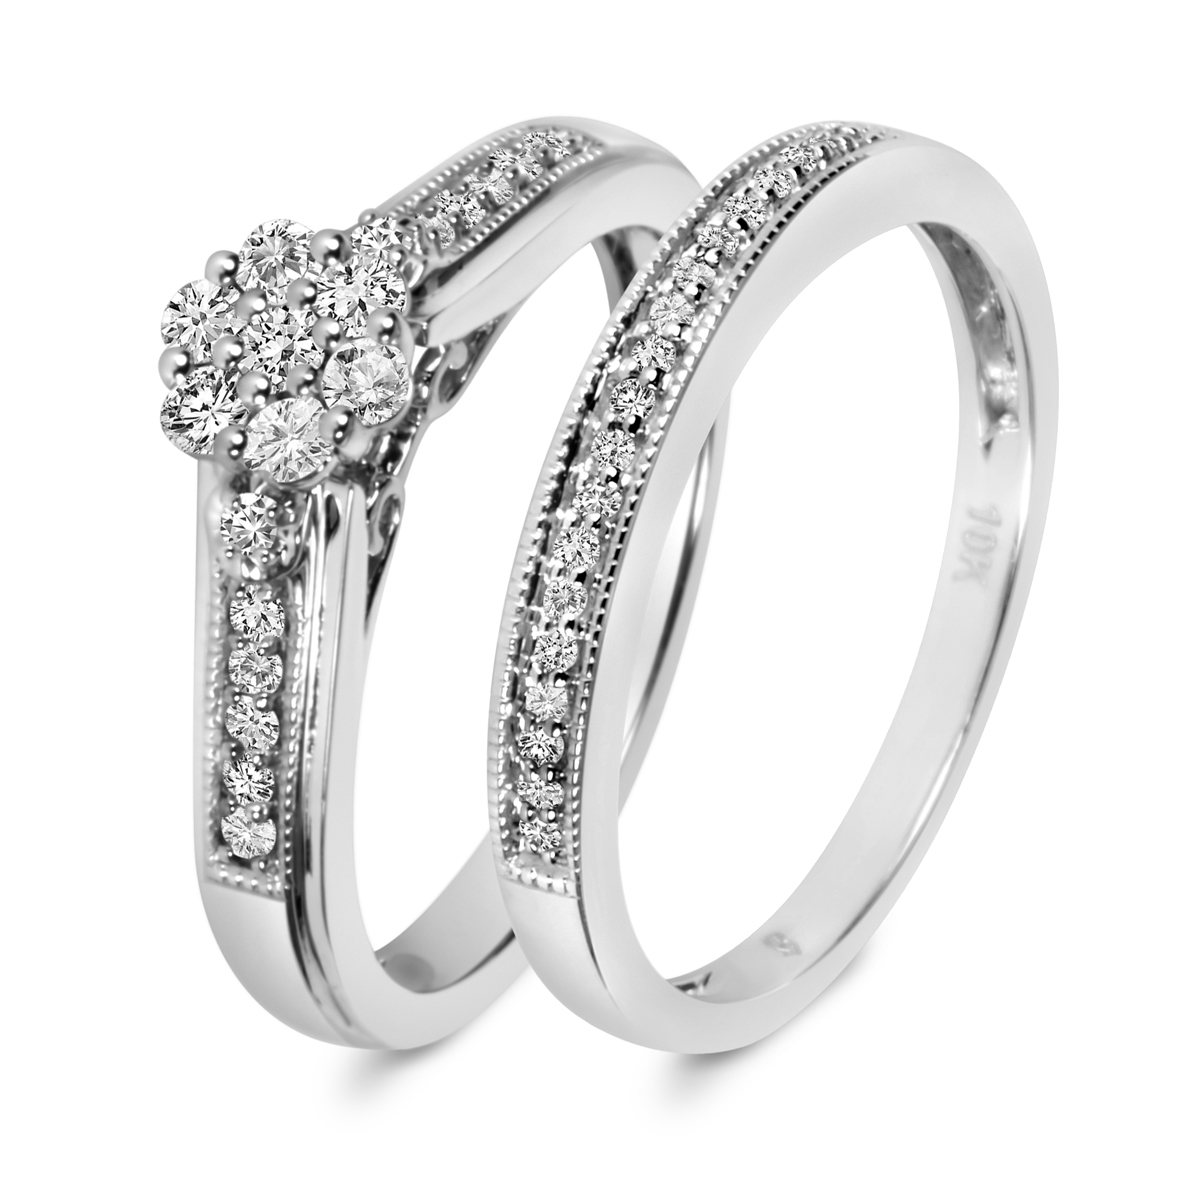 1 1 3 ct tw diamond ladies bridal wedding ring set 10k for Ladies diamond wedding ring sets